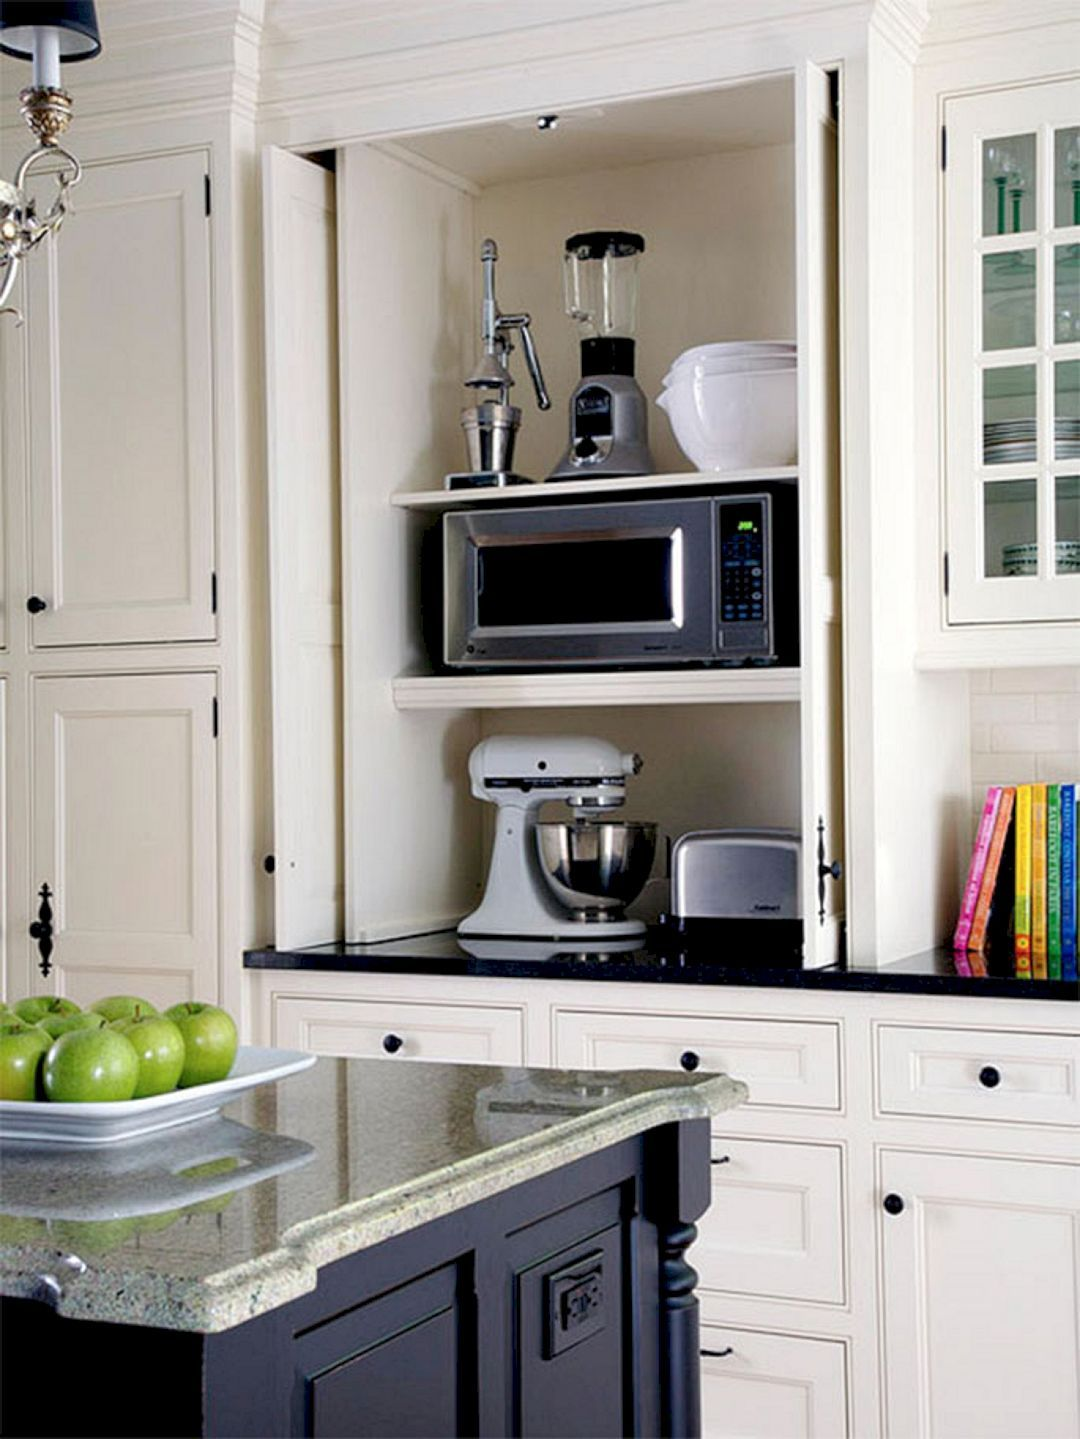 15 stunning diy kitchen storage solutions for small space and space saving ideas freshouz com on kitchen organization for small spaces id=44053